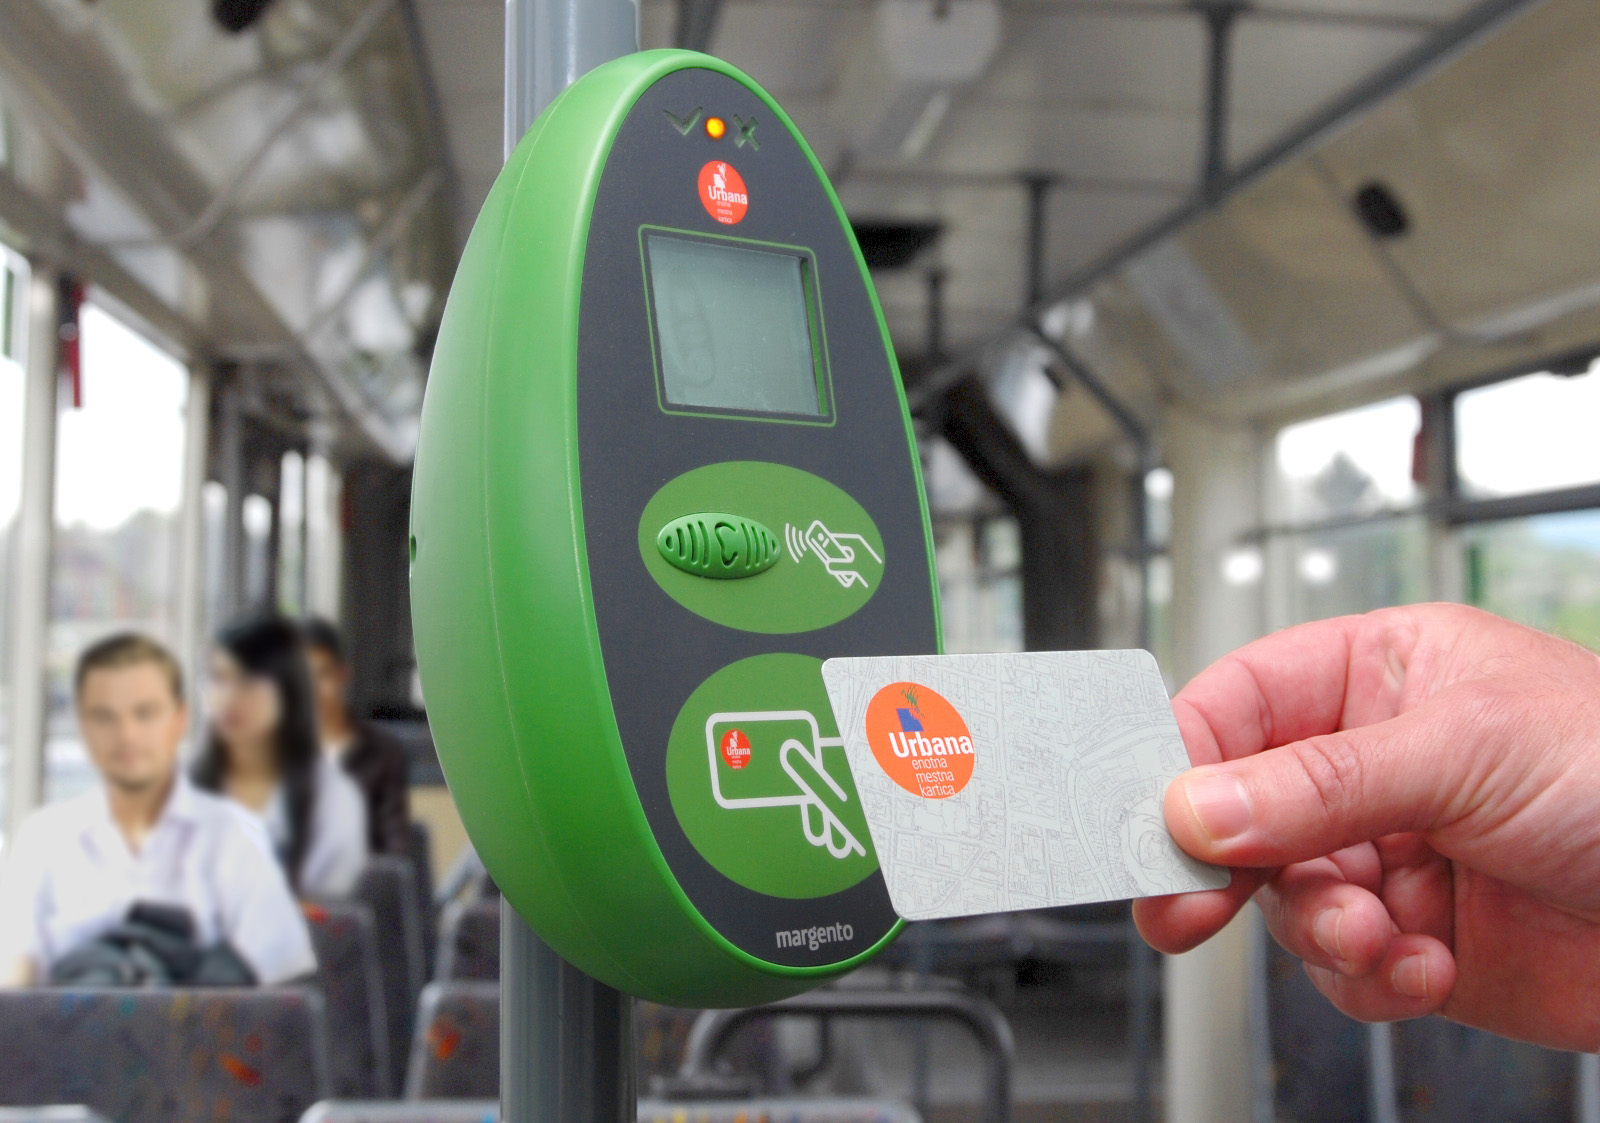 Urbana City card upgraded with support for Visa and MasterCard funding